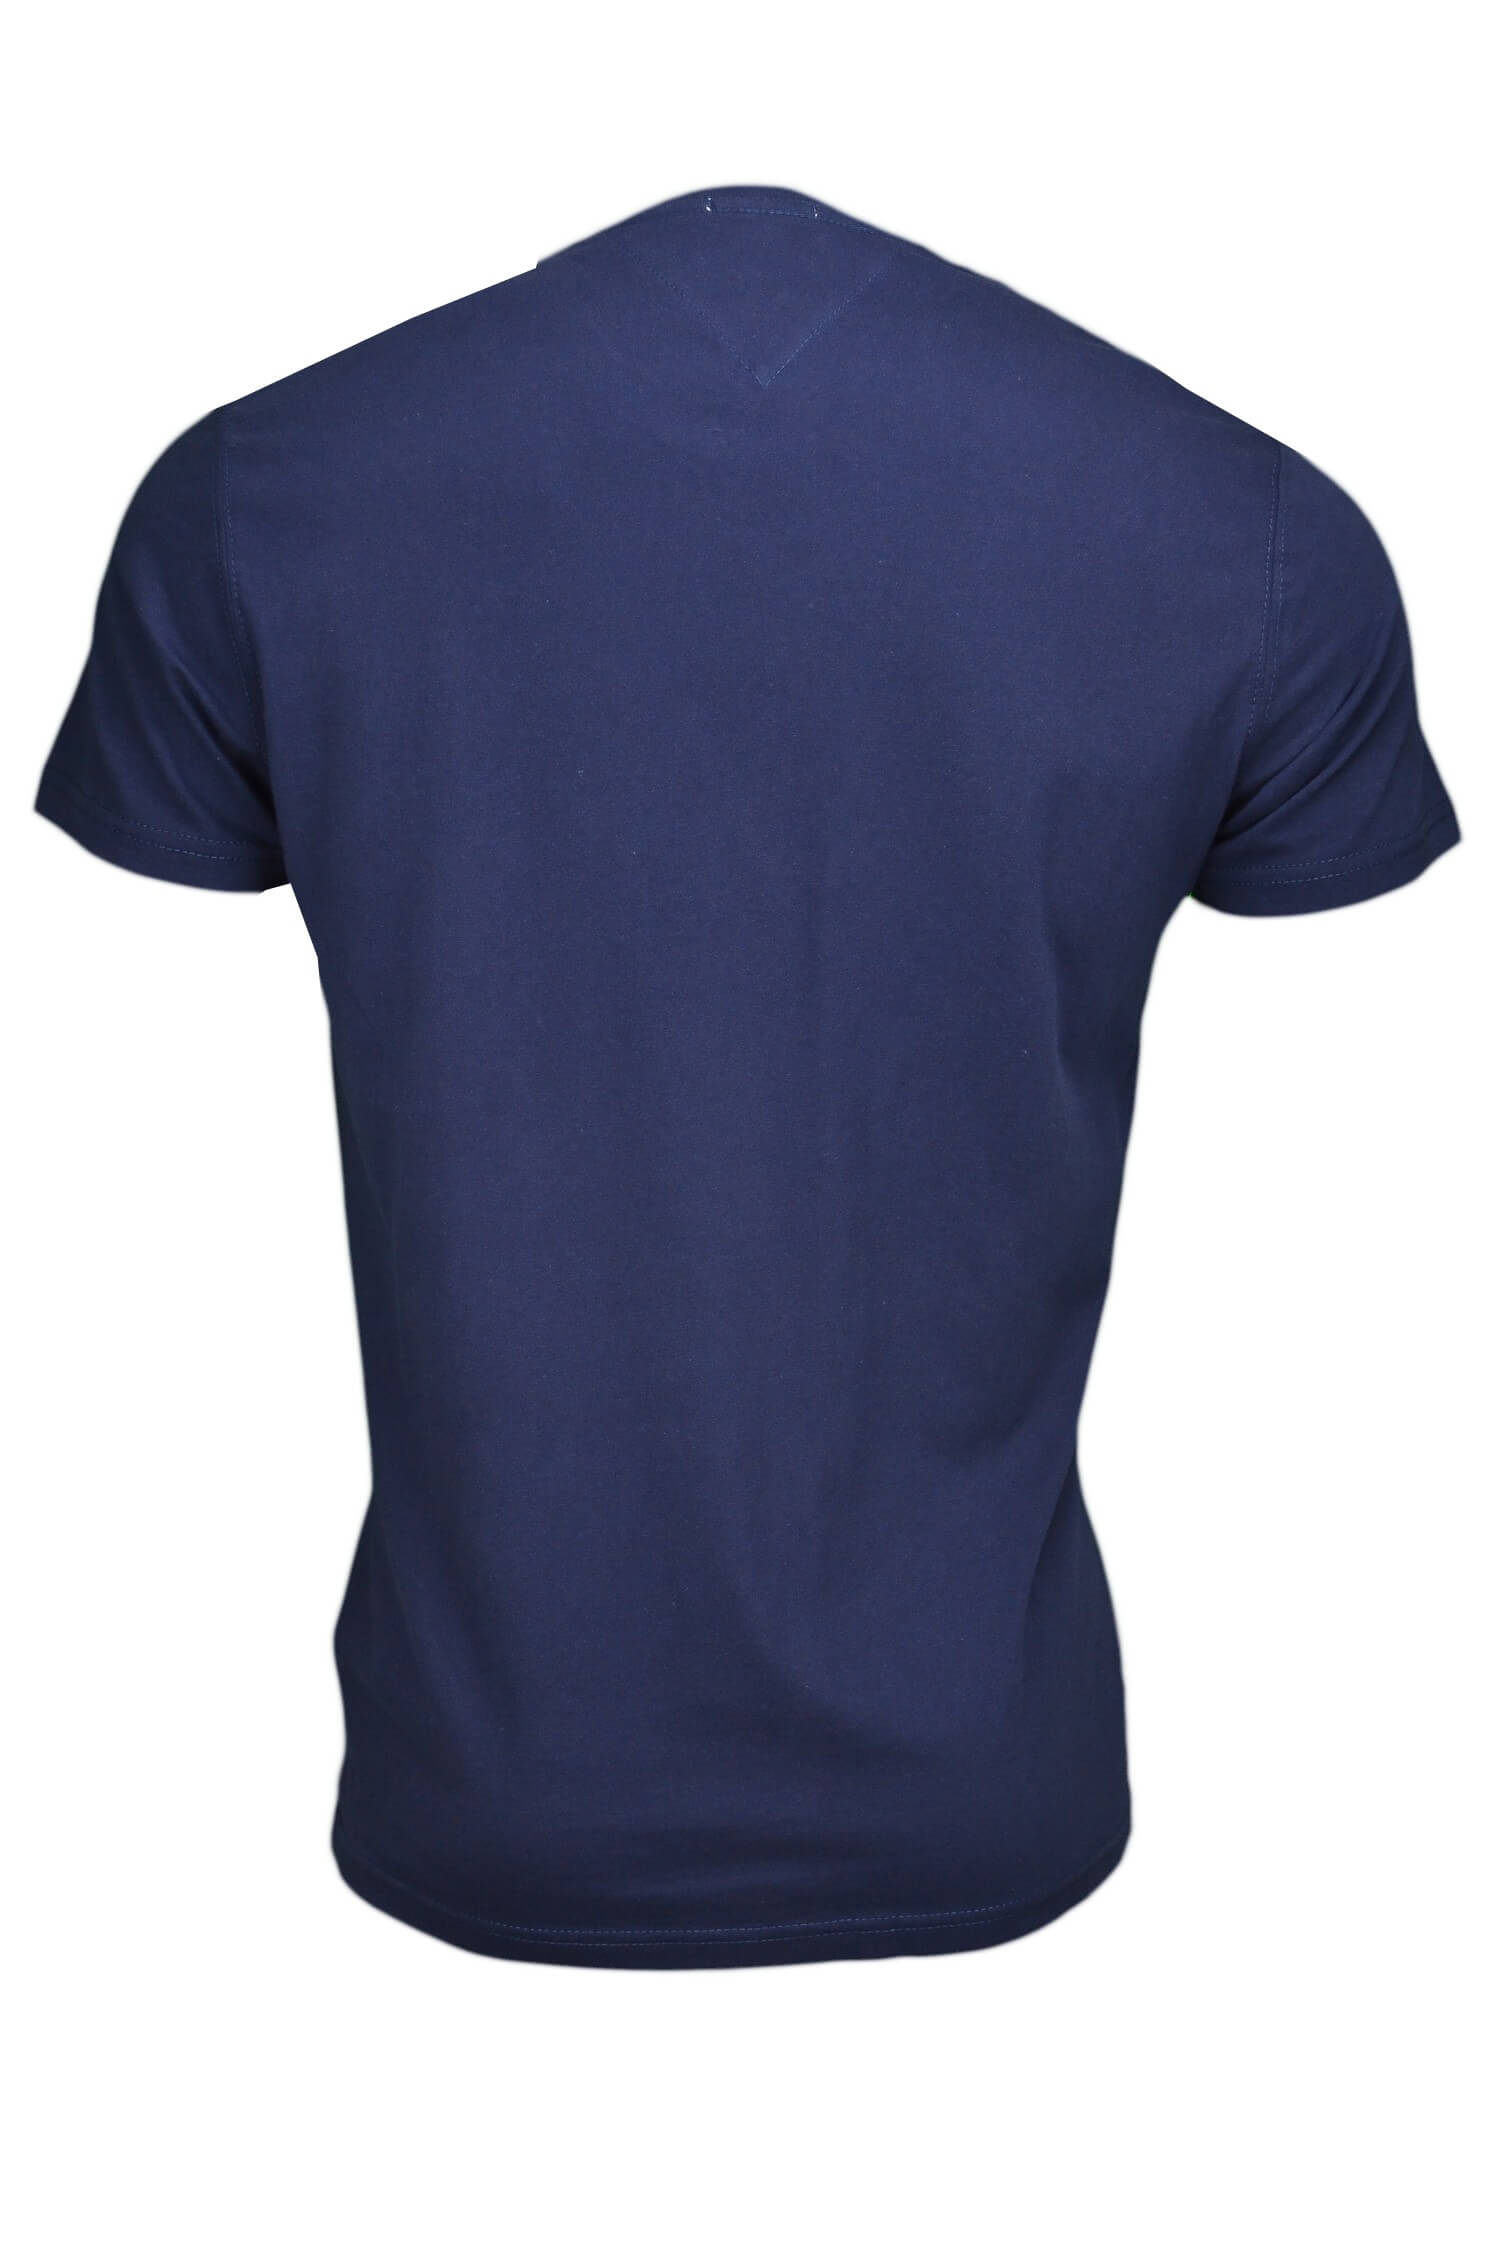 t shirt col rond tommy hilfiger inscription bleu marine pour homme. Black Bedroom Furniture Sets. Home Design Ideas